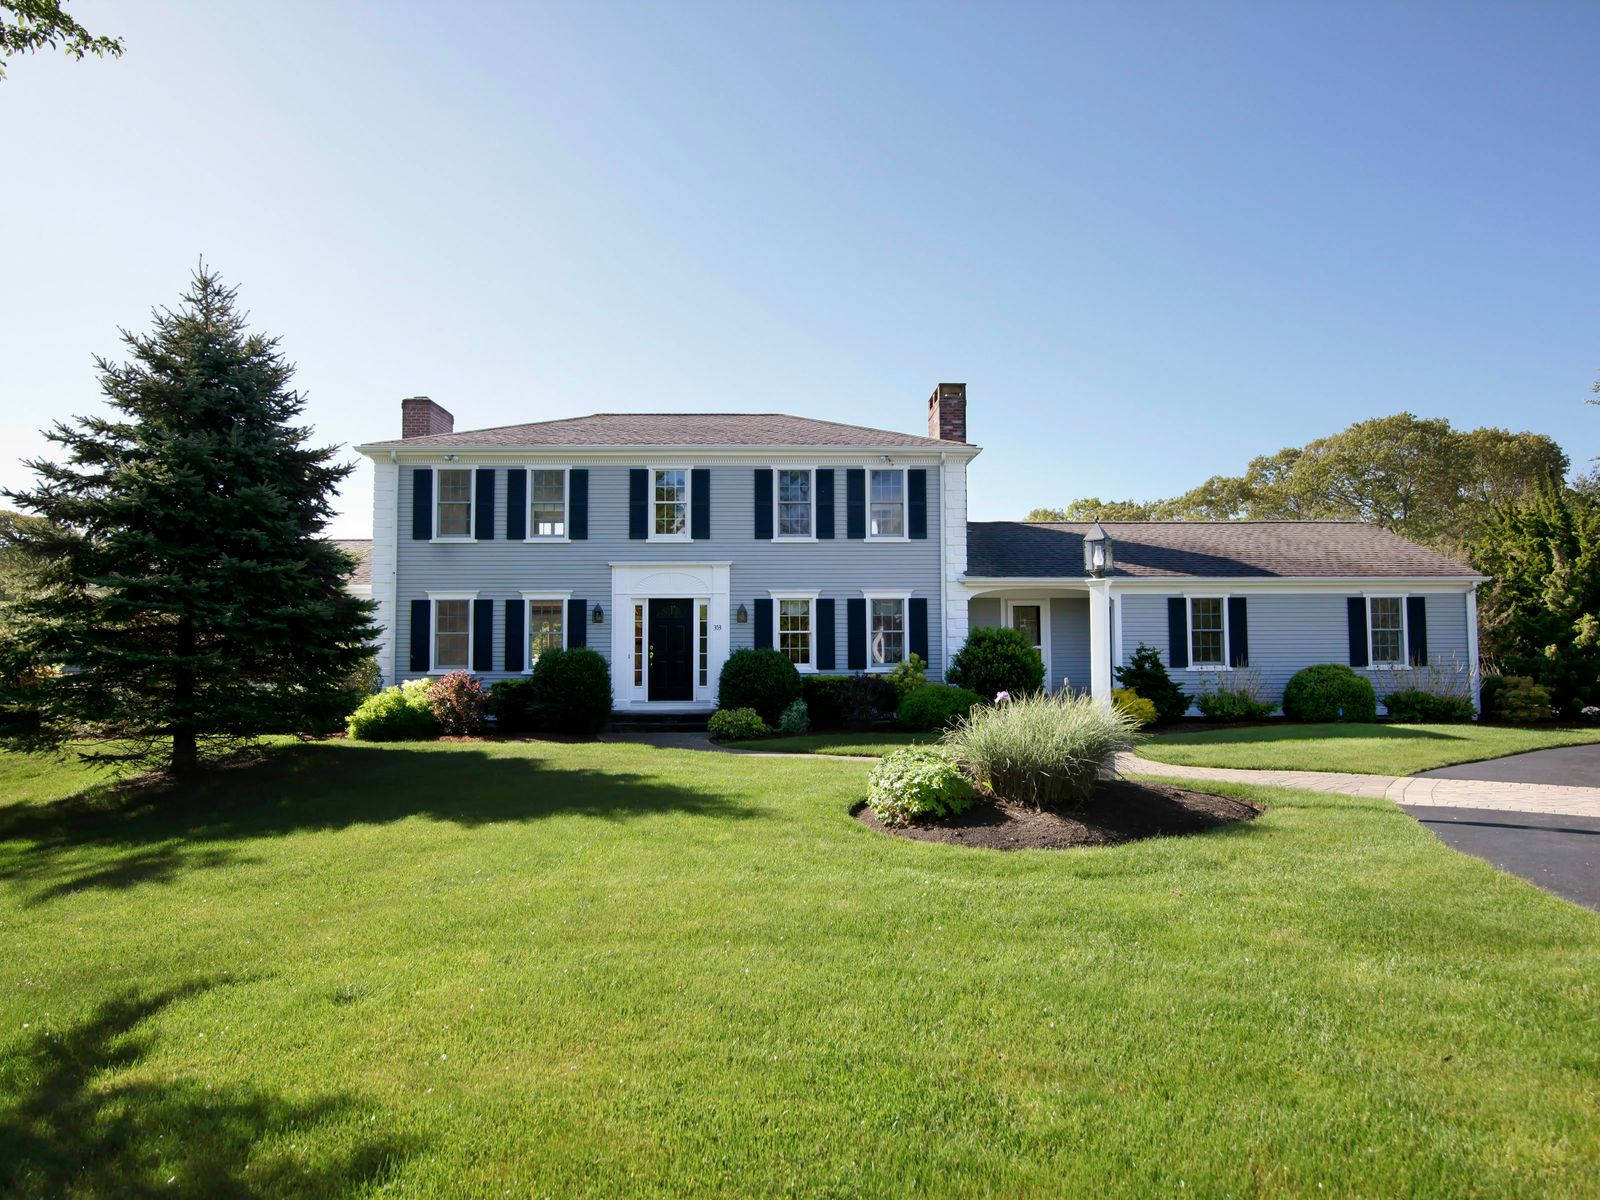 Captivating Colonial with Views, West Hyannisport MA Single Family Home - Cape Cod Real Estate